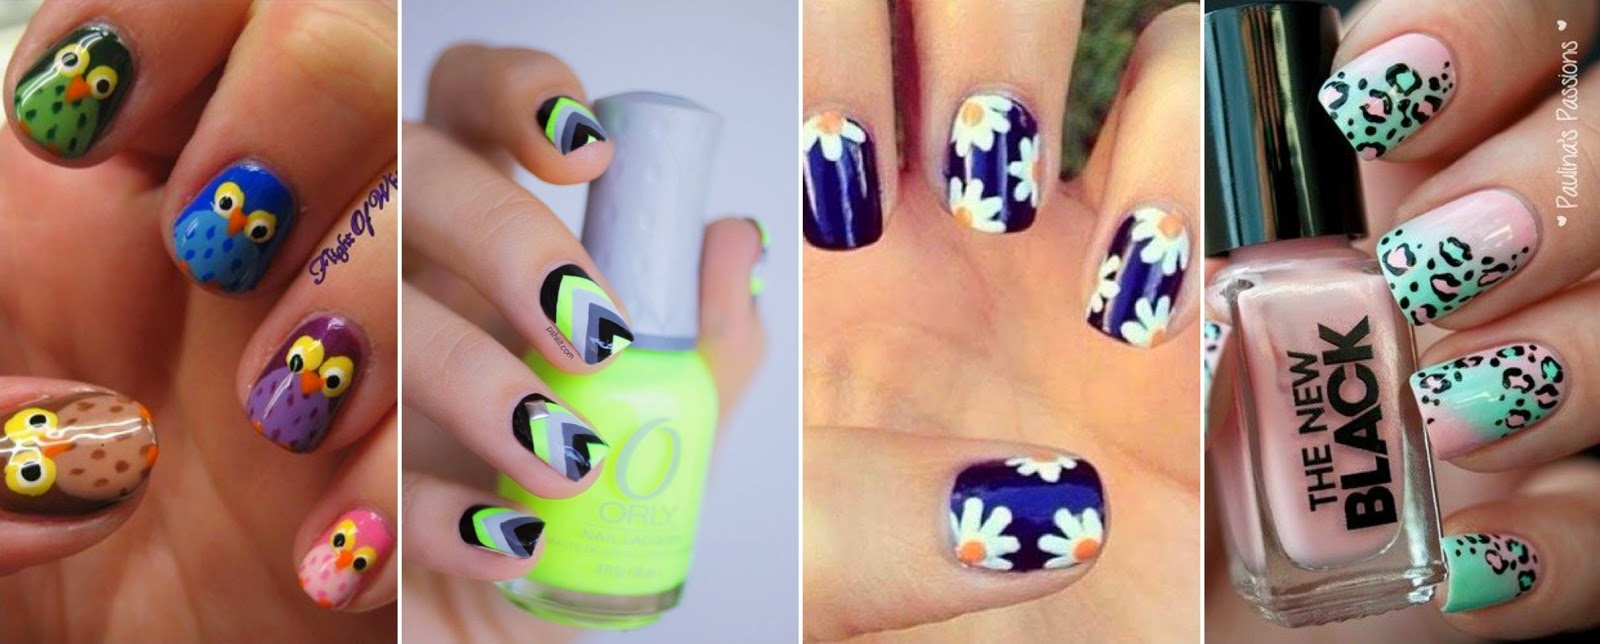 Thanks mail carrier nail polish will never be the same hot nail art prinsesfo Images